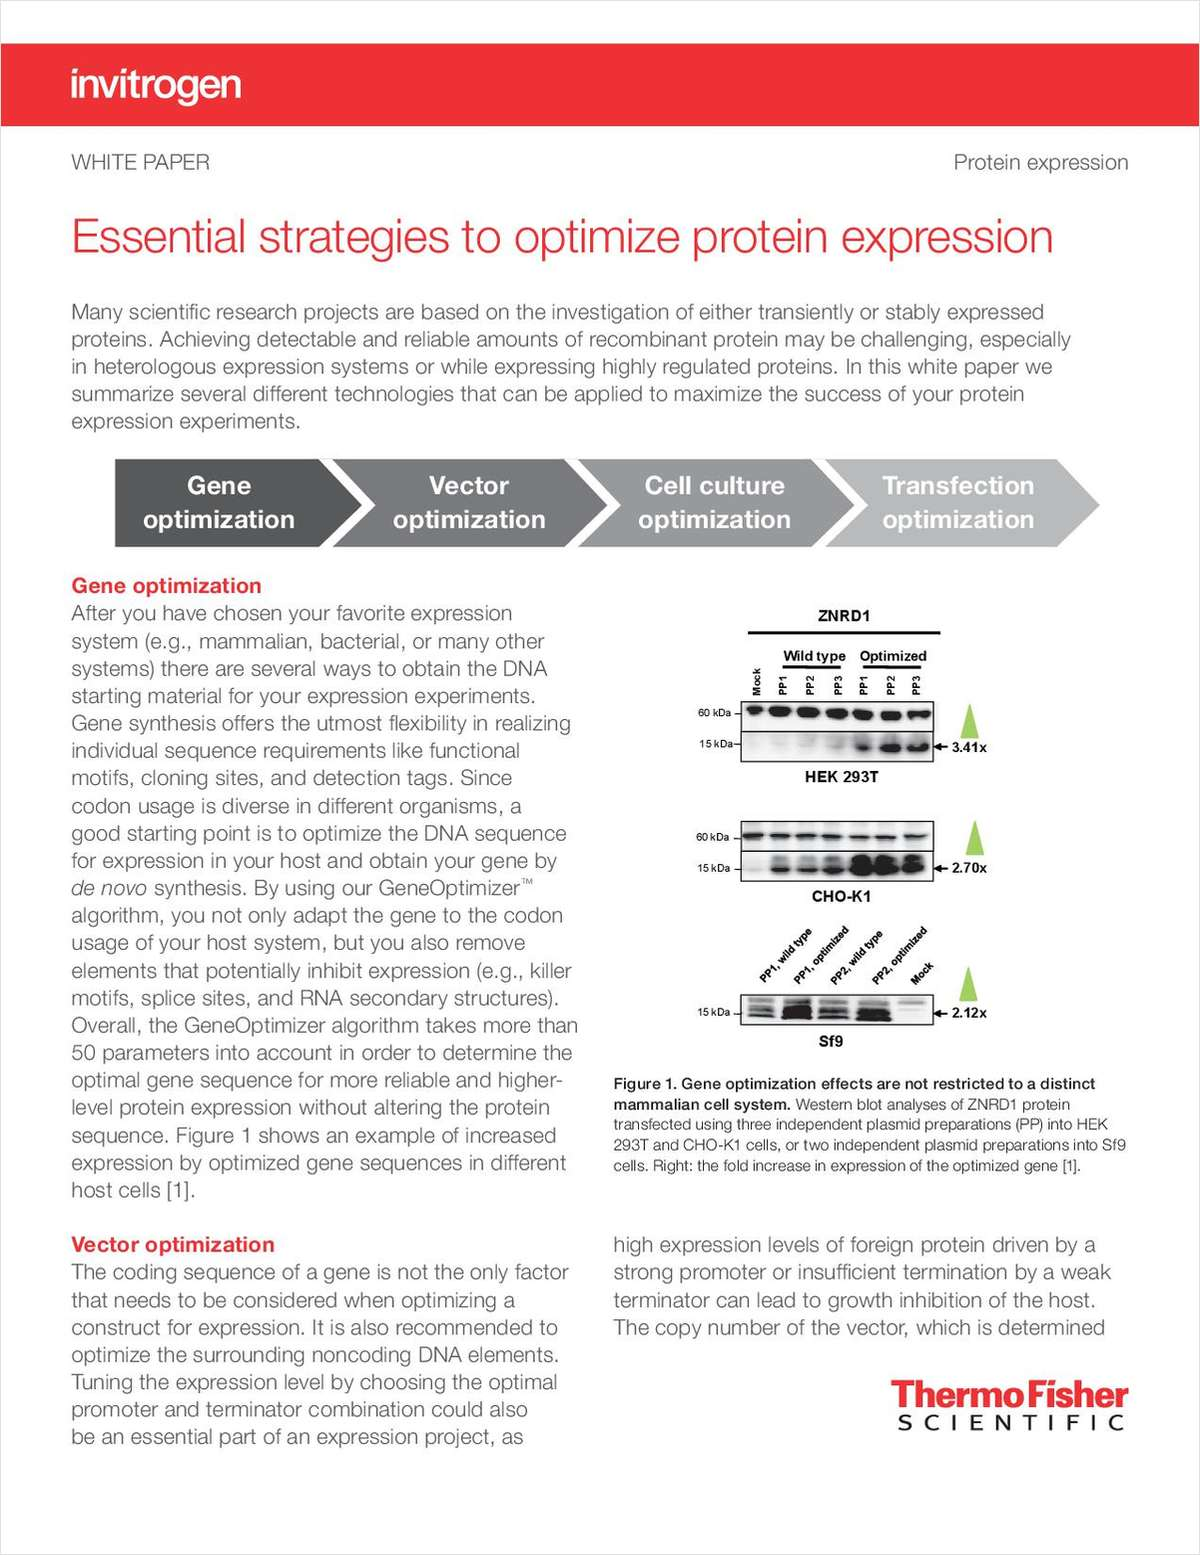 Essential Strategies to Optimize Protein Expression